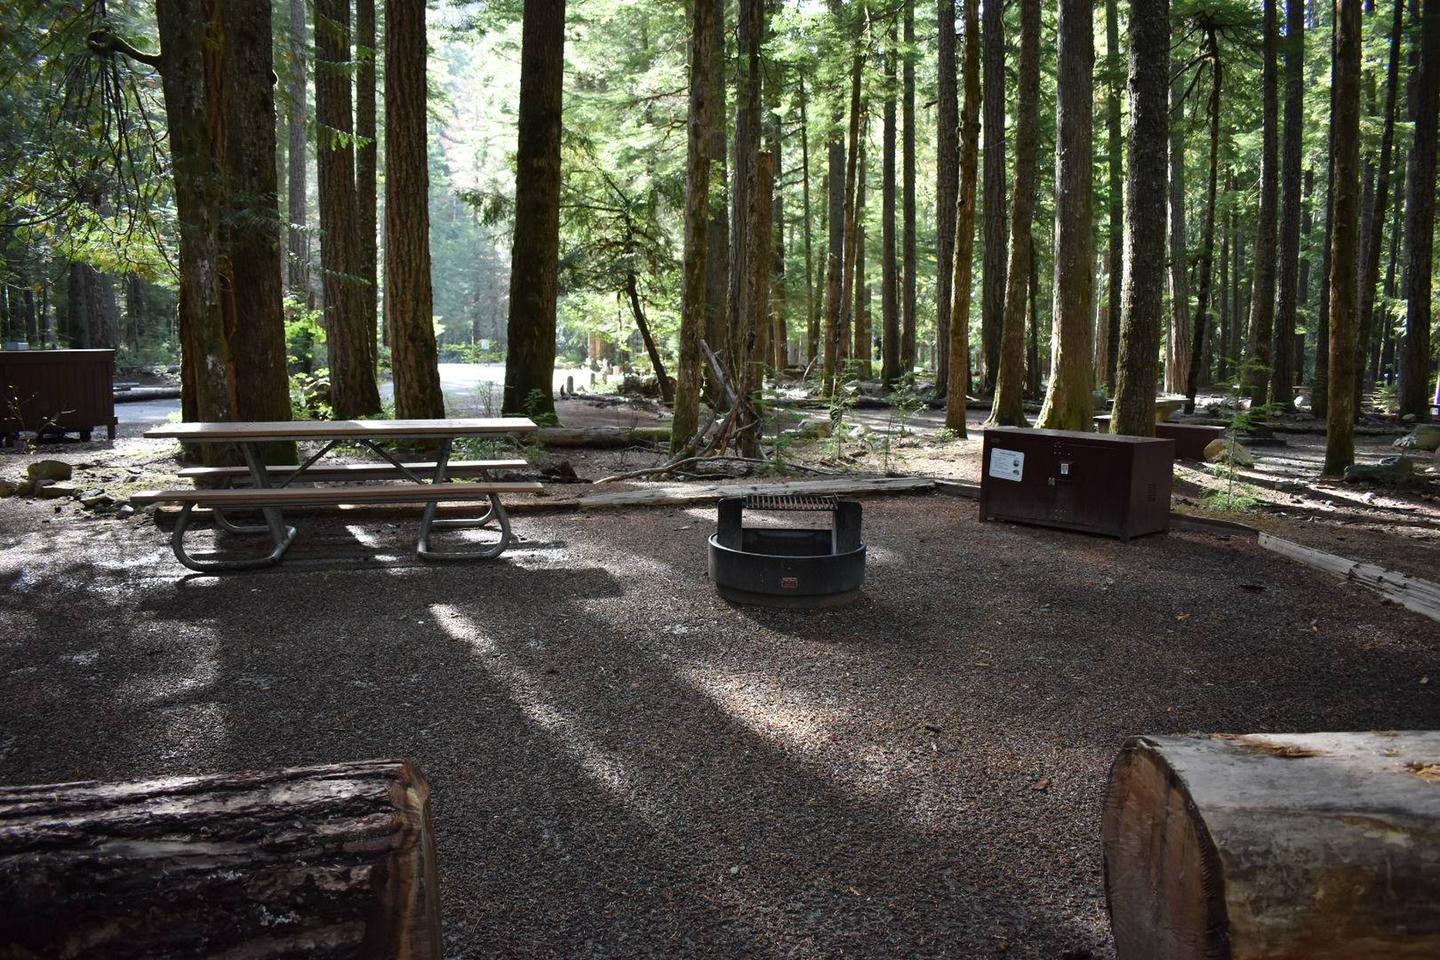 Ohanapecosh Campground - Site D014 AmenitiesCampers are provided with a picnic table, food storage box, and fire pit.